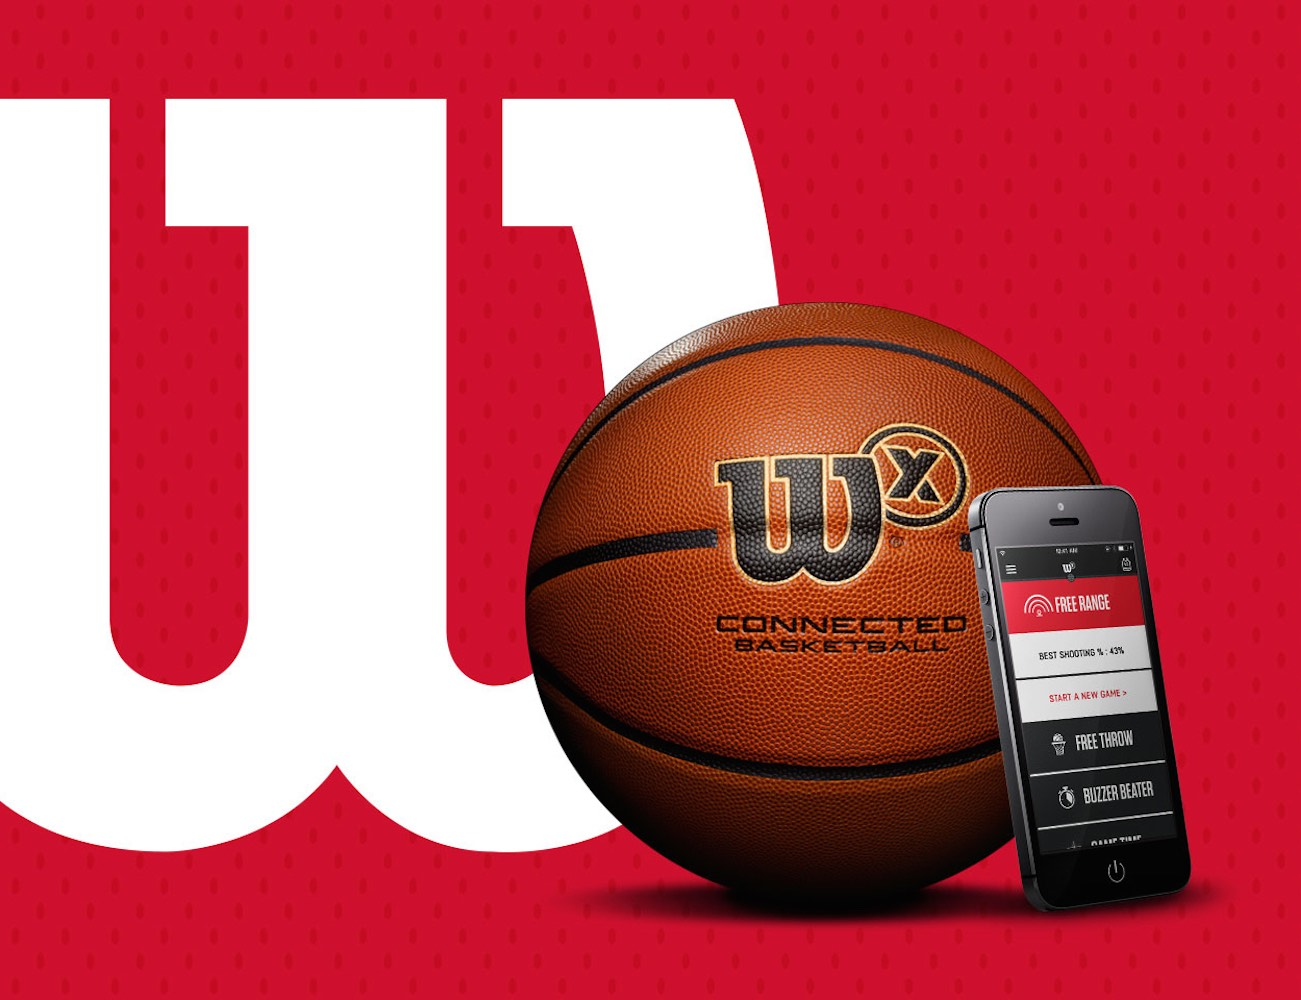 Wilson-X-Connected-Basketball-Track-Your-Shooting-Stats-From-Your-Phone-04.jpg